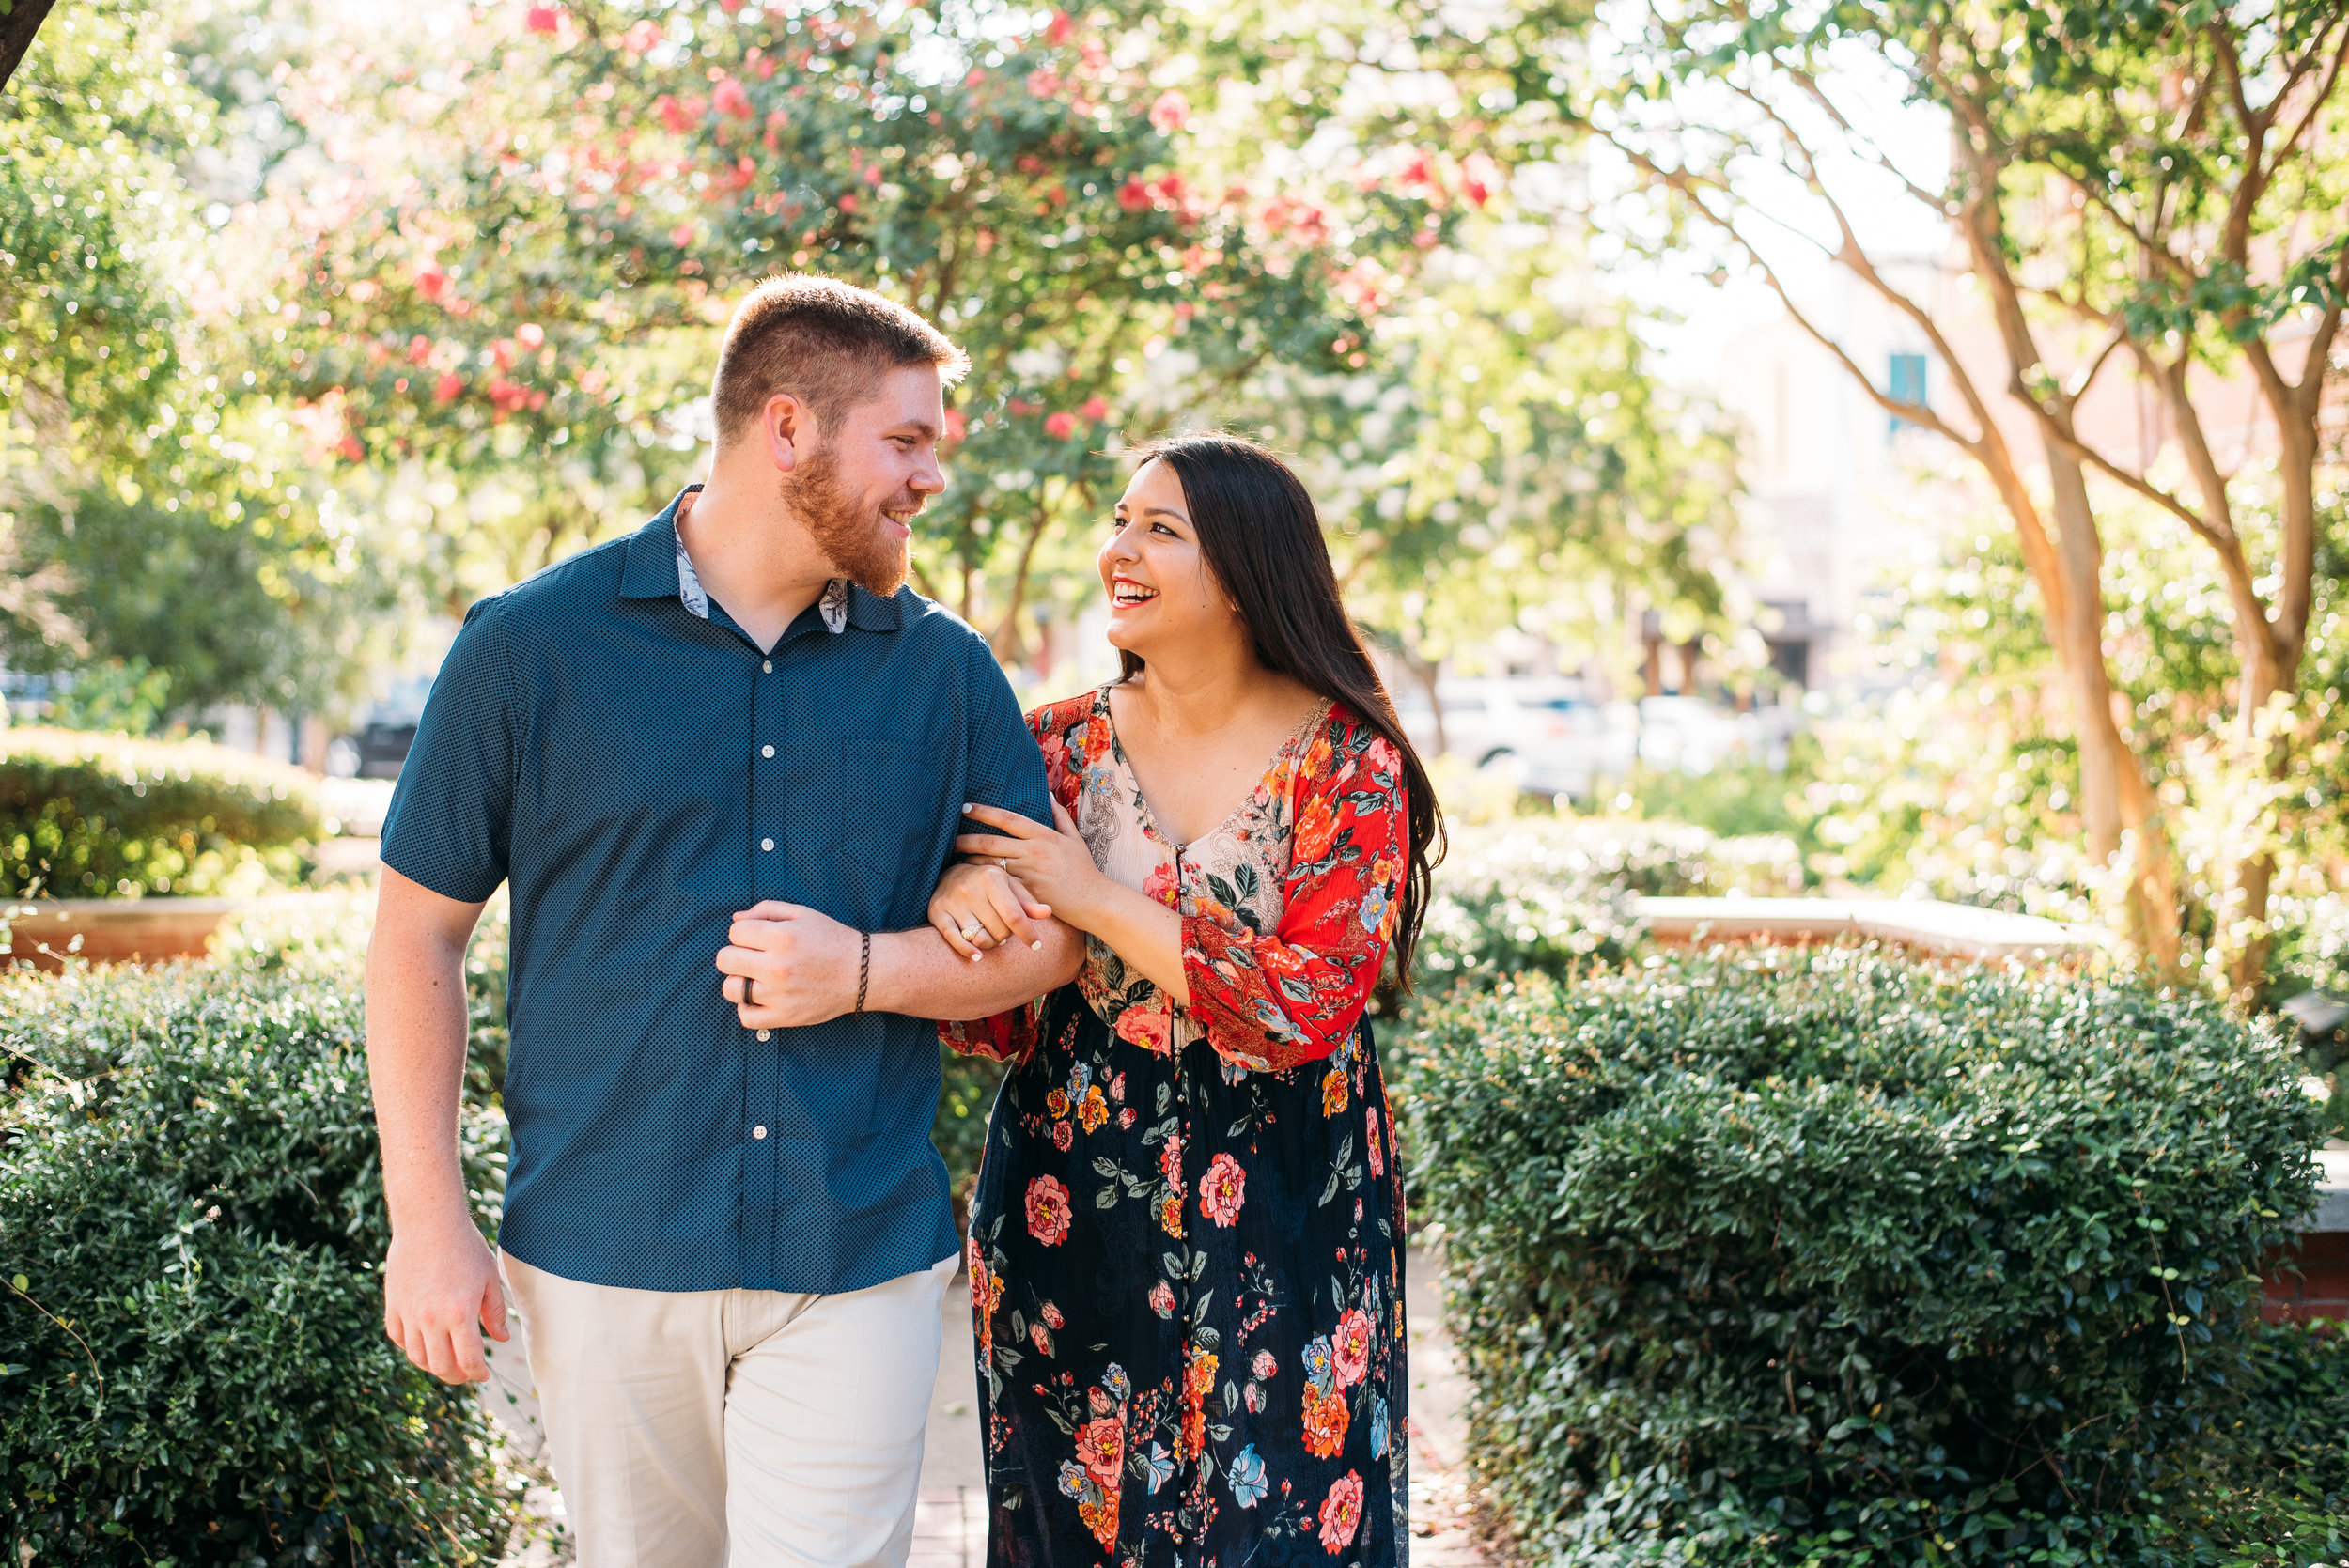 Downtown-Bryan-Engagement-George-Bush-Library-Texas-A&M-University-College-Station-Wedding-Photographer-San-Angel-Photo-Mark-Abigail-Jake-11.jpg